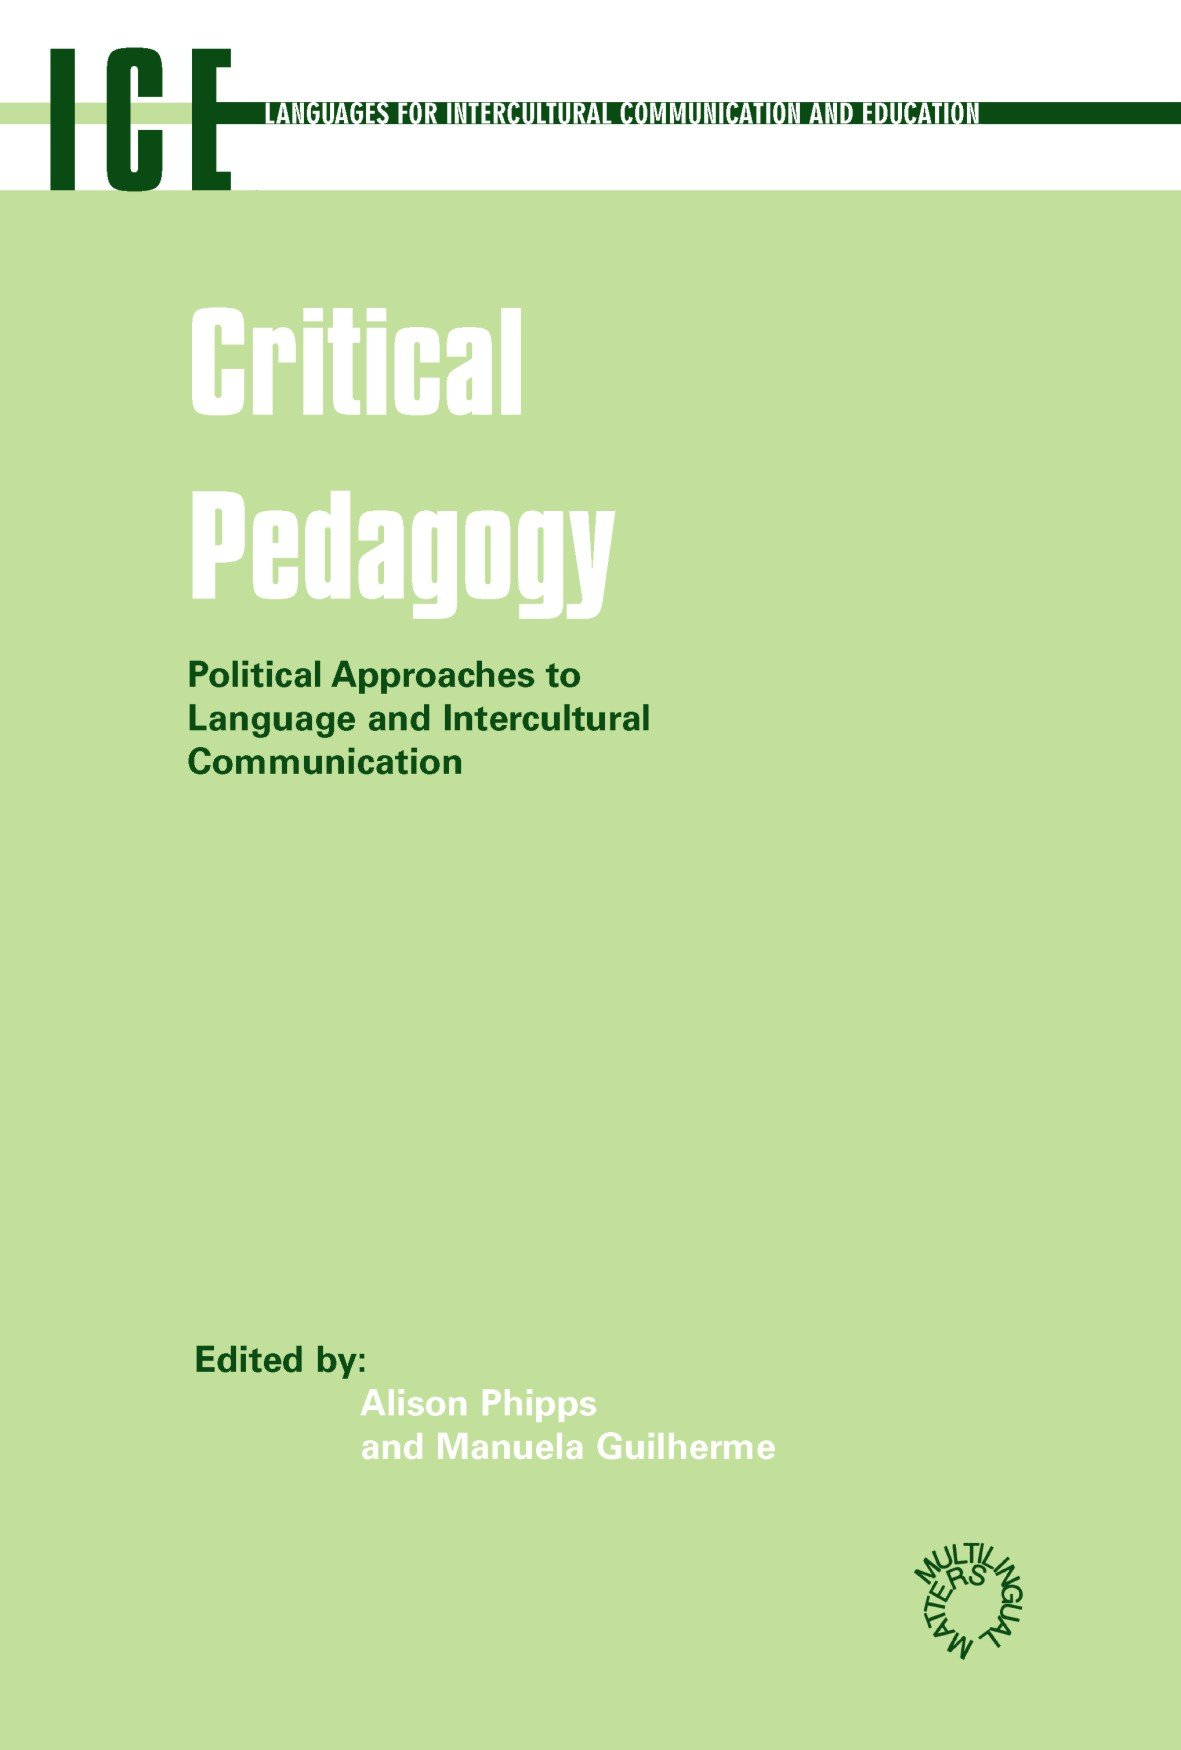 Read Online Critical Pedagogy: Political Approaches to Languages and Intercultural Communication (Languages for Intercultural Communication and Education) PDF